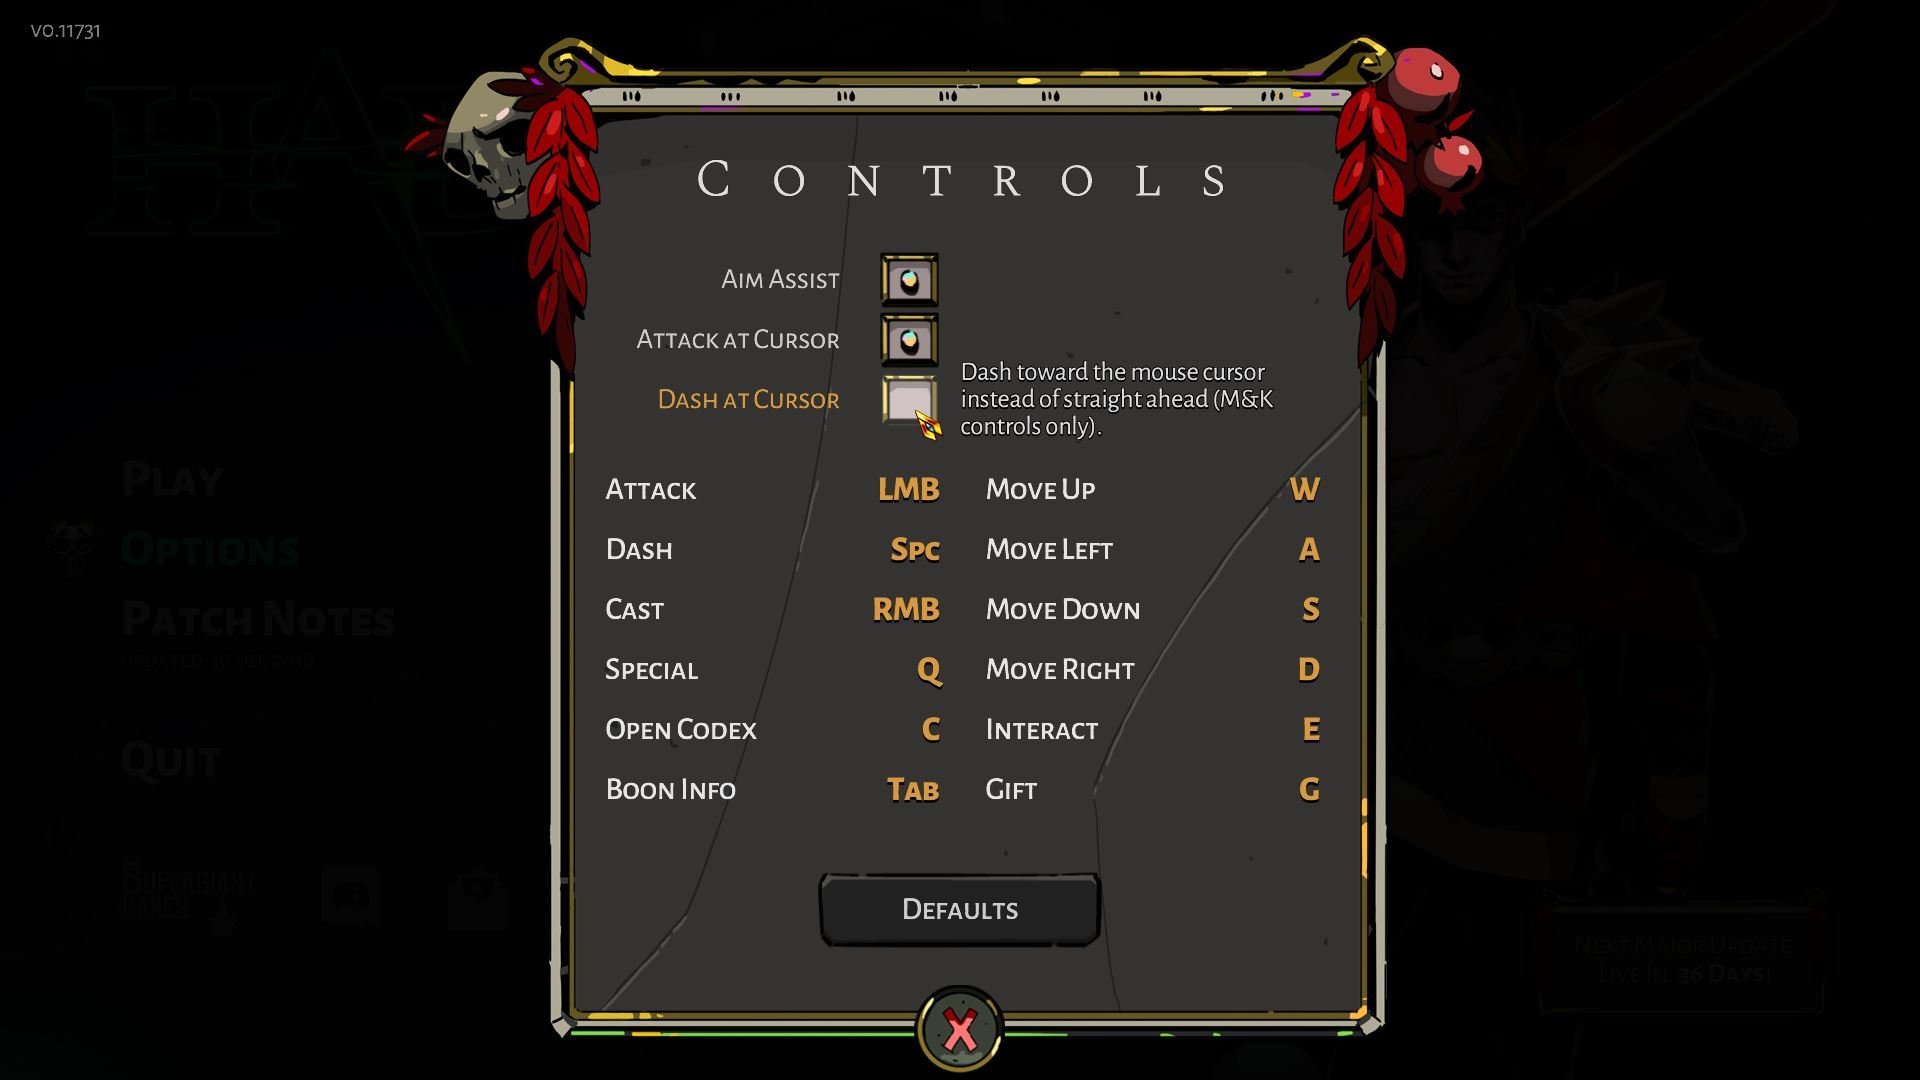 Hades controls and keybindings